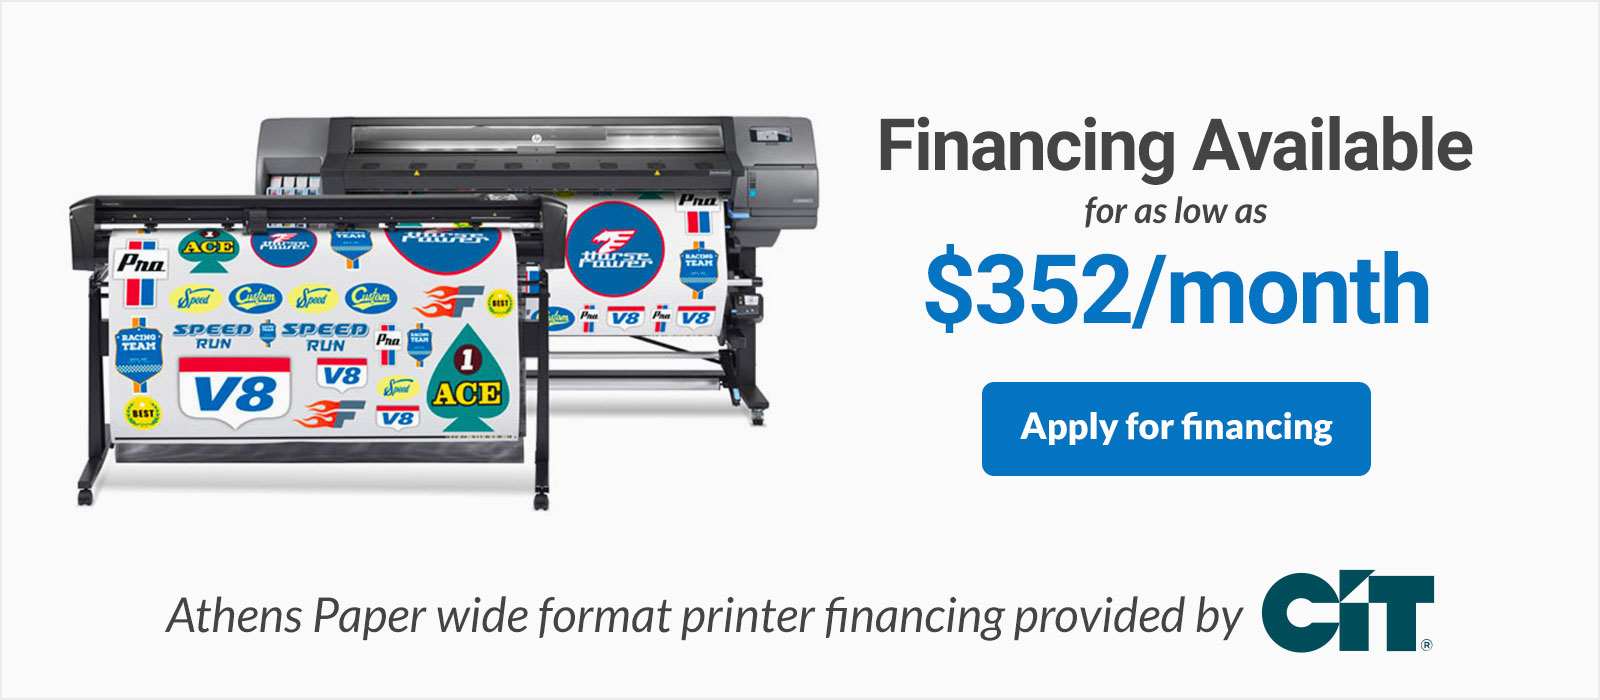 HP Latex 335 Print and Cut Financing HP 335 Printer and Cutter Bundle on sale discounted low monthly payments